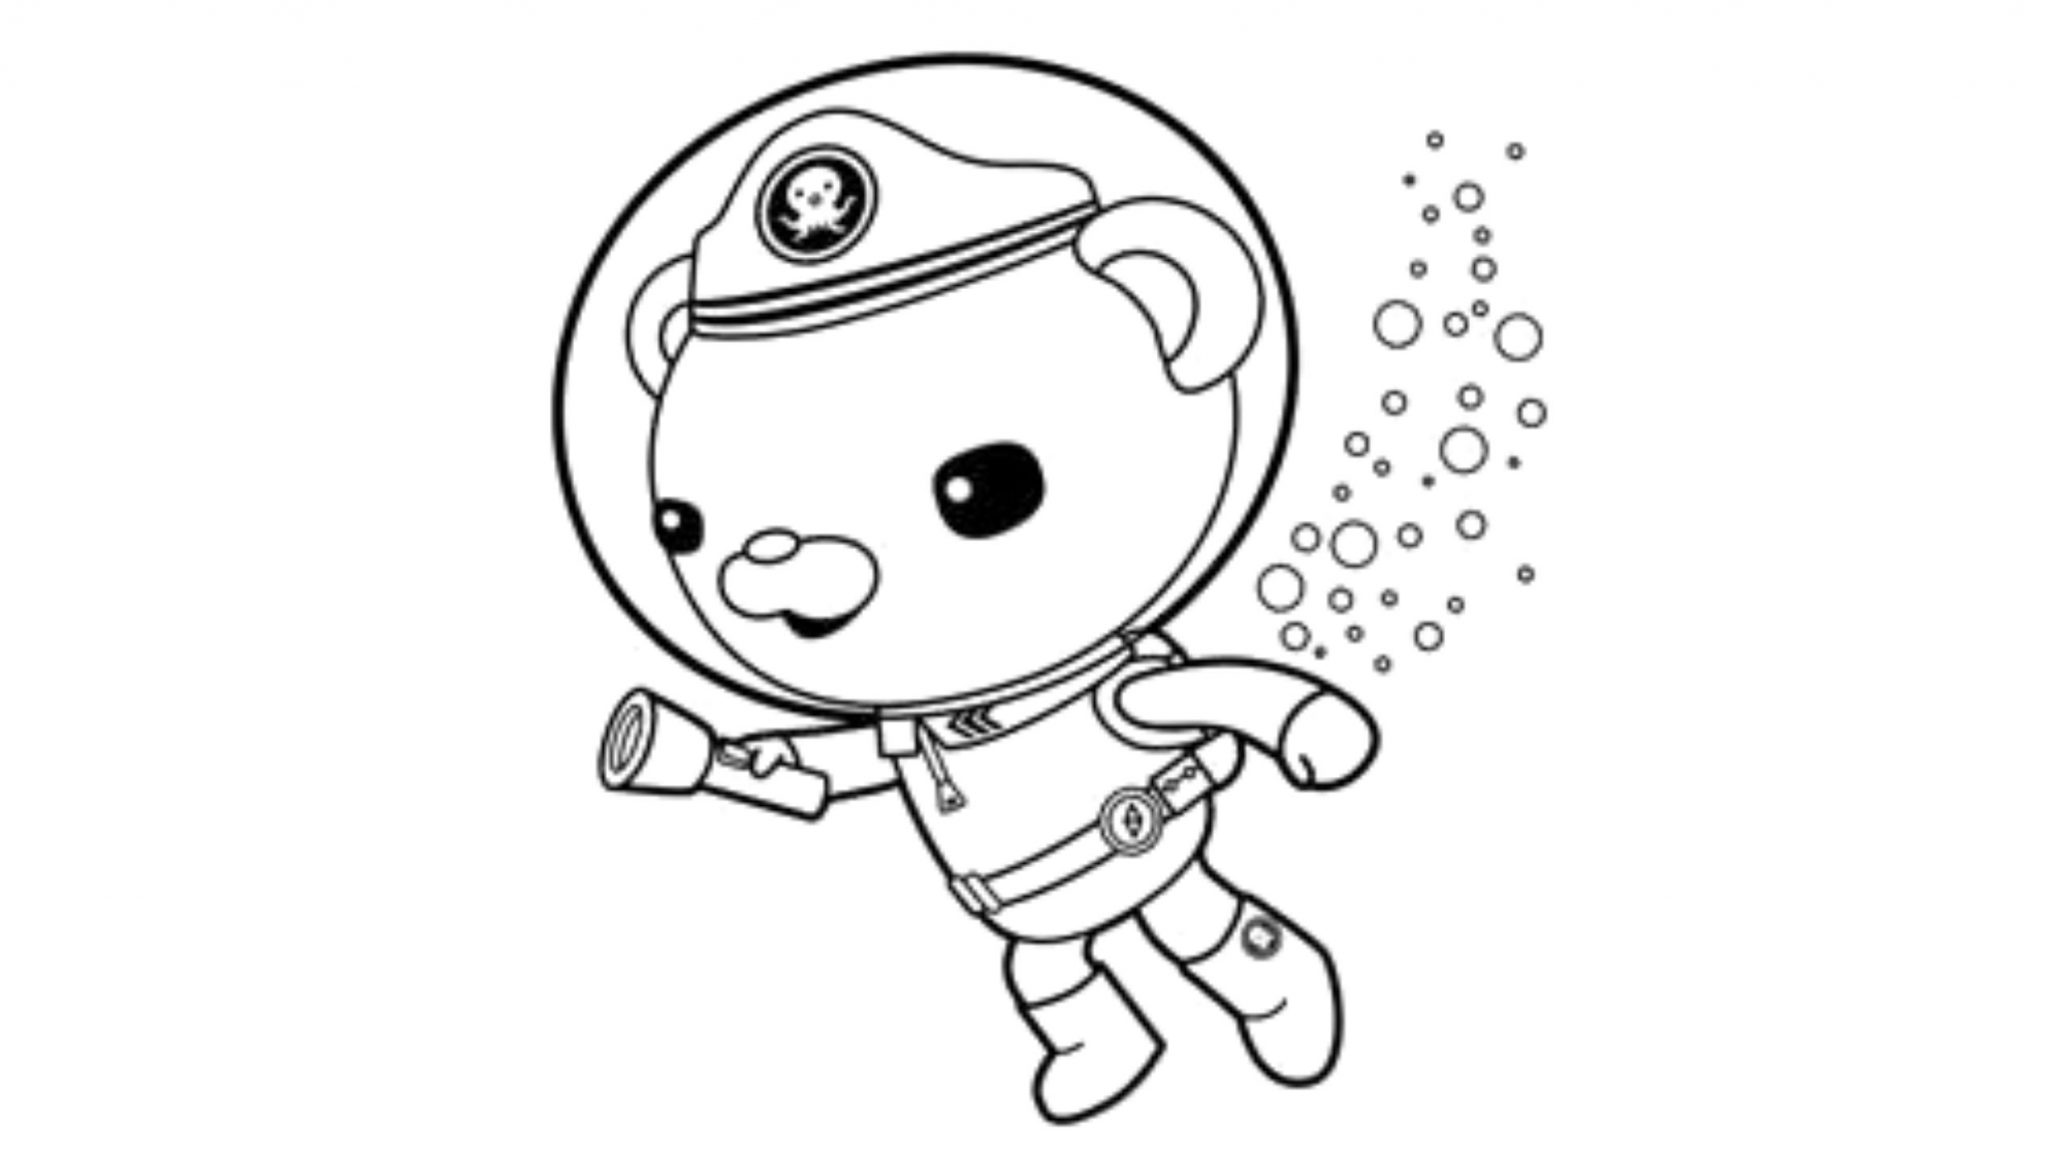 Print & Download - Octonauts Coloring Pages for Your Kid's ...